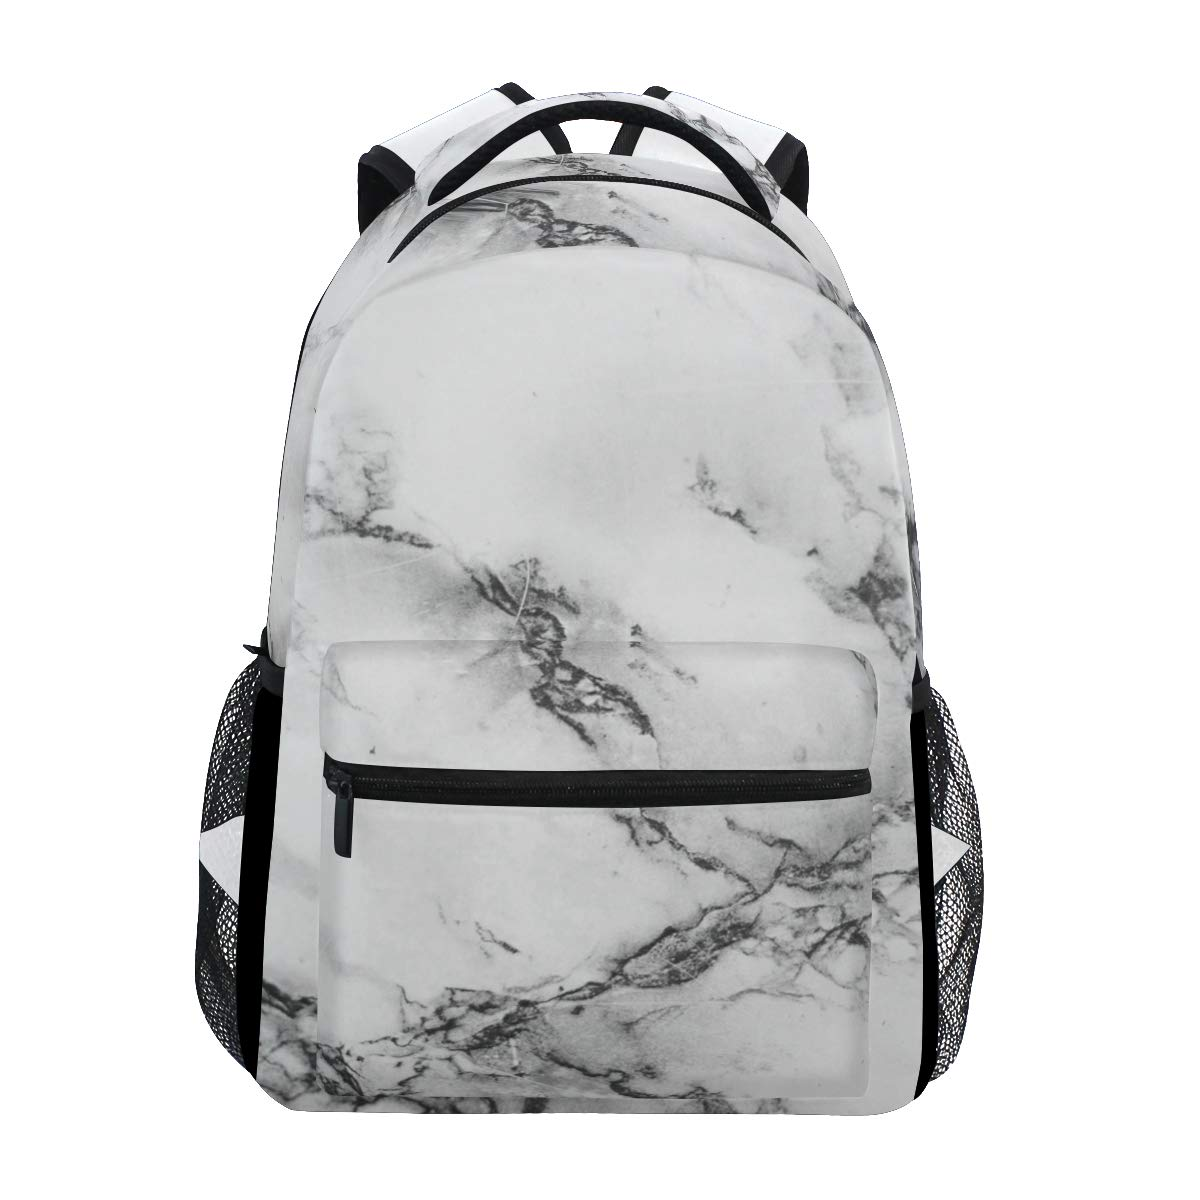 ZZKKO Black and White Marble Art Boys Girls School Computer Backpacks Book Bag Travel Hiking Camping Daypack by ZZKKO